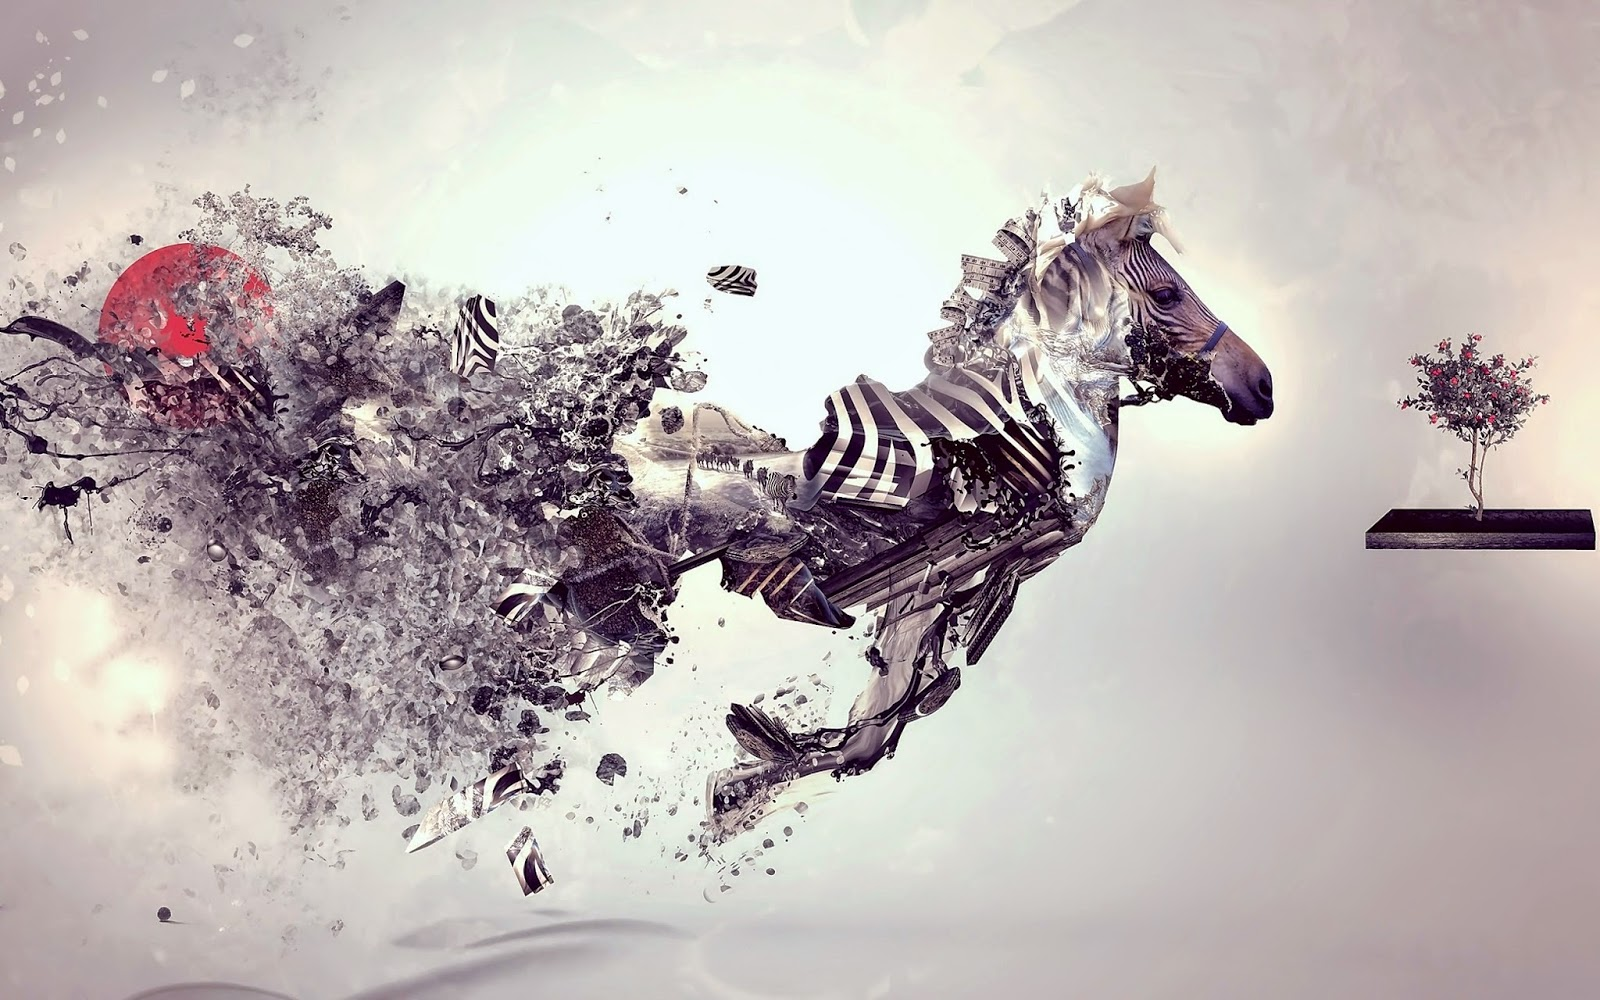 Good   Wallpaper Horse Abstract - Abstract%2BZebra%2BHD%2BWallpaperz%2Baqqusd  Perfect Image Reference_381134.jpg